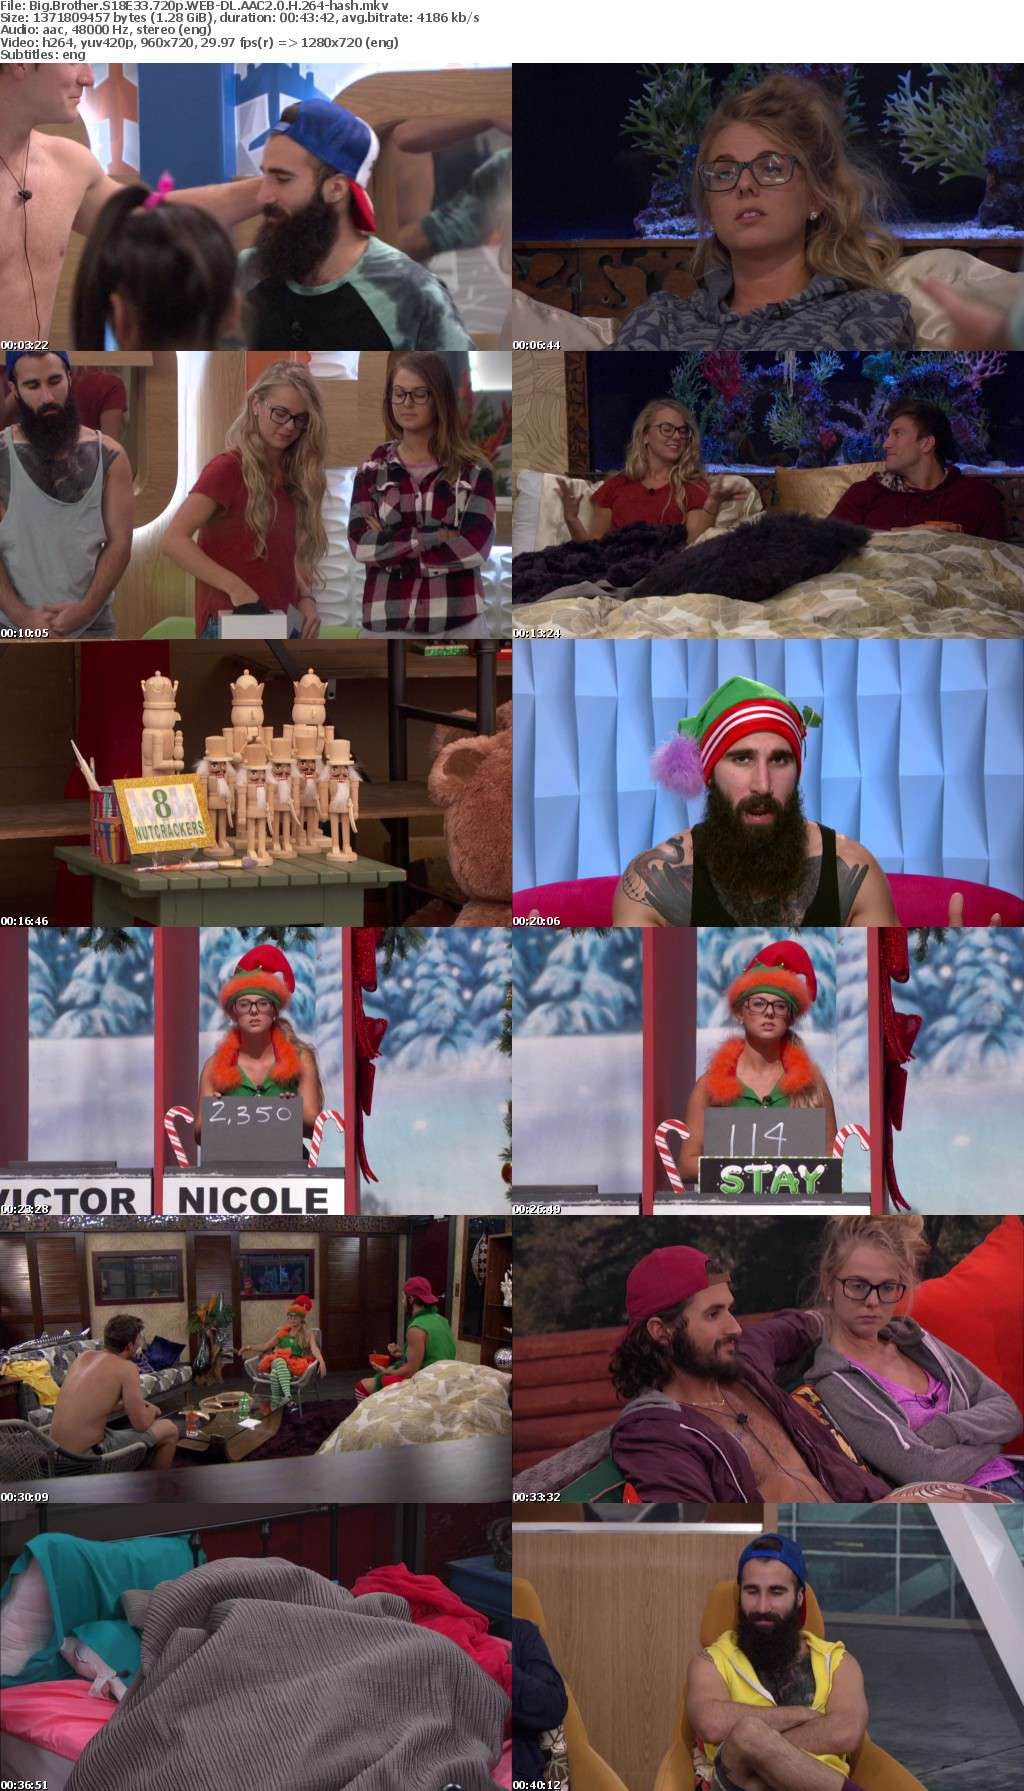 Big Brother S18E33 720p WEB-DL AAC2 0 H 264-hash